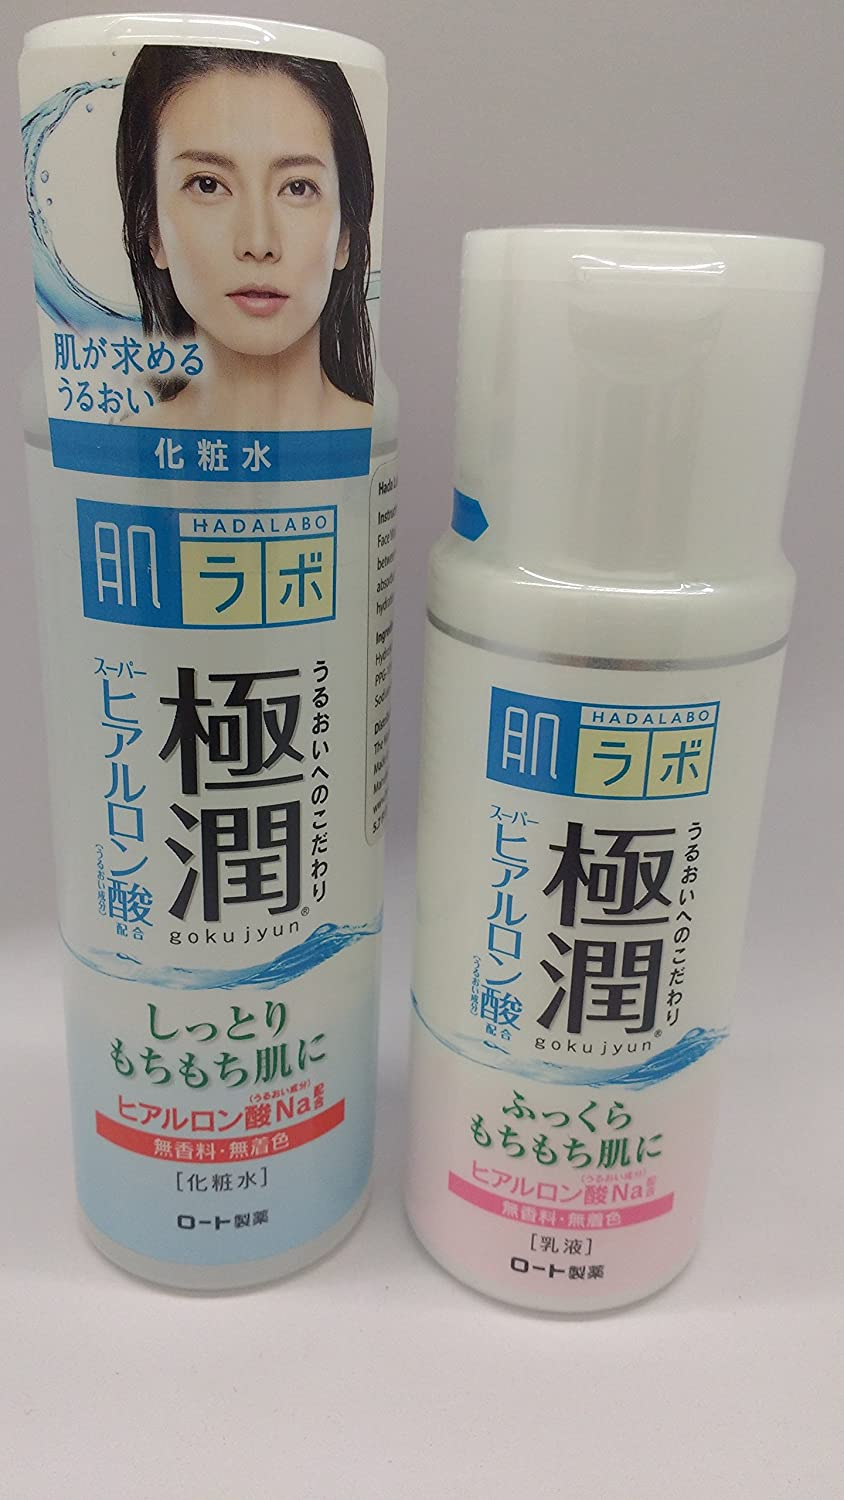 Hada Labo Gokujyun Super Hyaluronic Acid Hydrating Lotion (5.7fl/170ml) & Milk (4.7fl/140ml) Set by Hada Labo Rohto